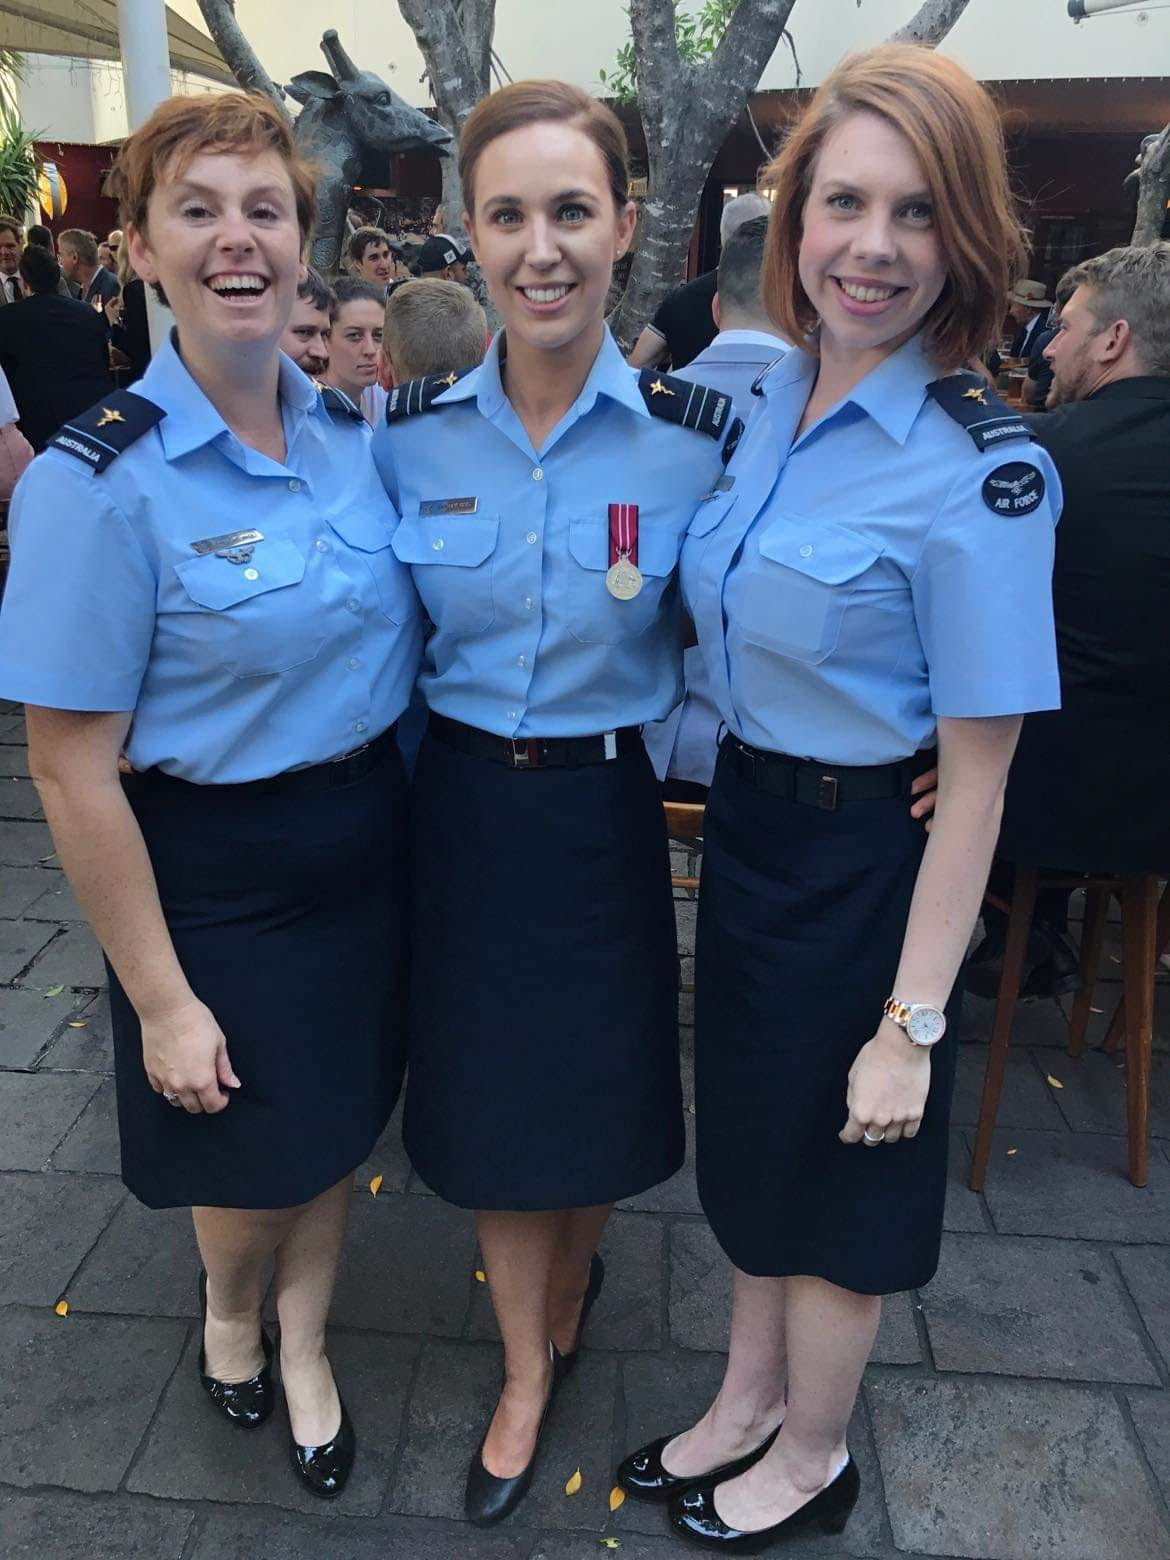 FLTLT Jones (right) with colleagues after the 2018 Anzac Day march in Brisbane.